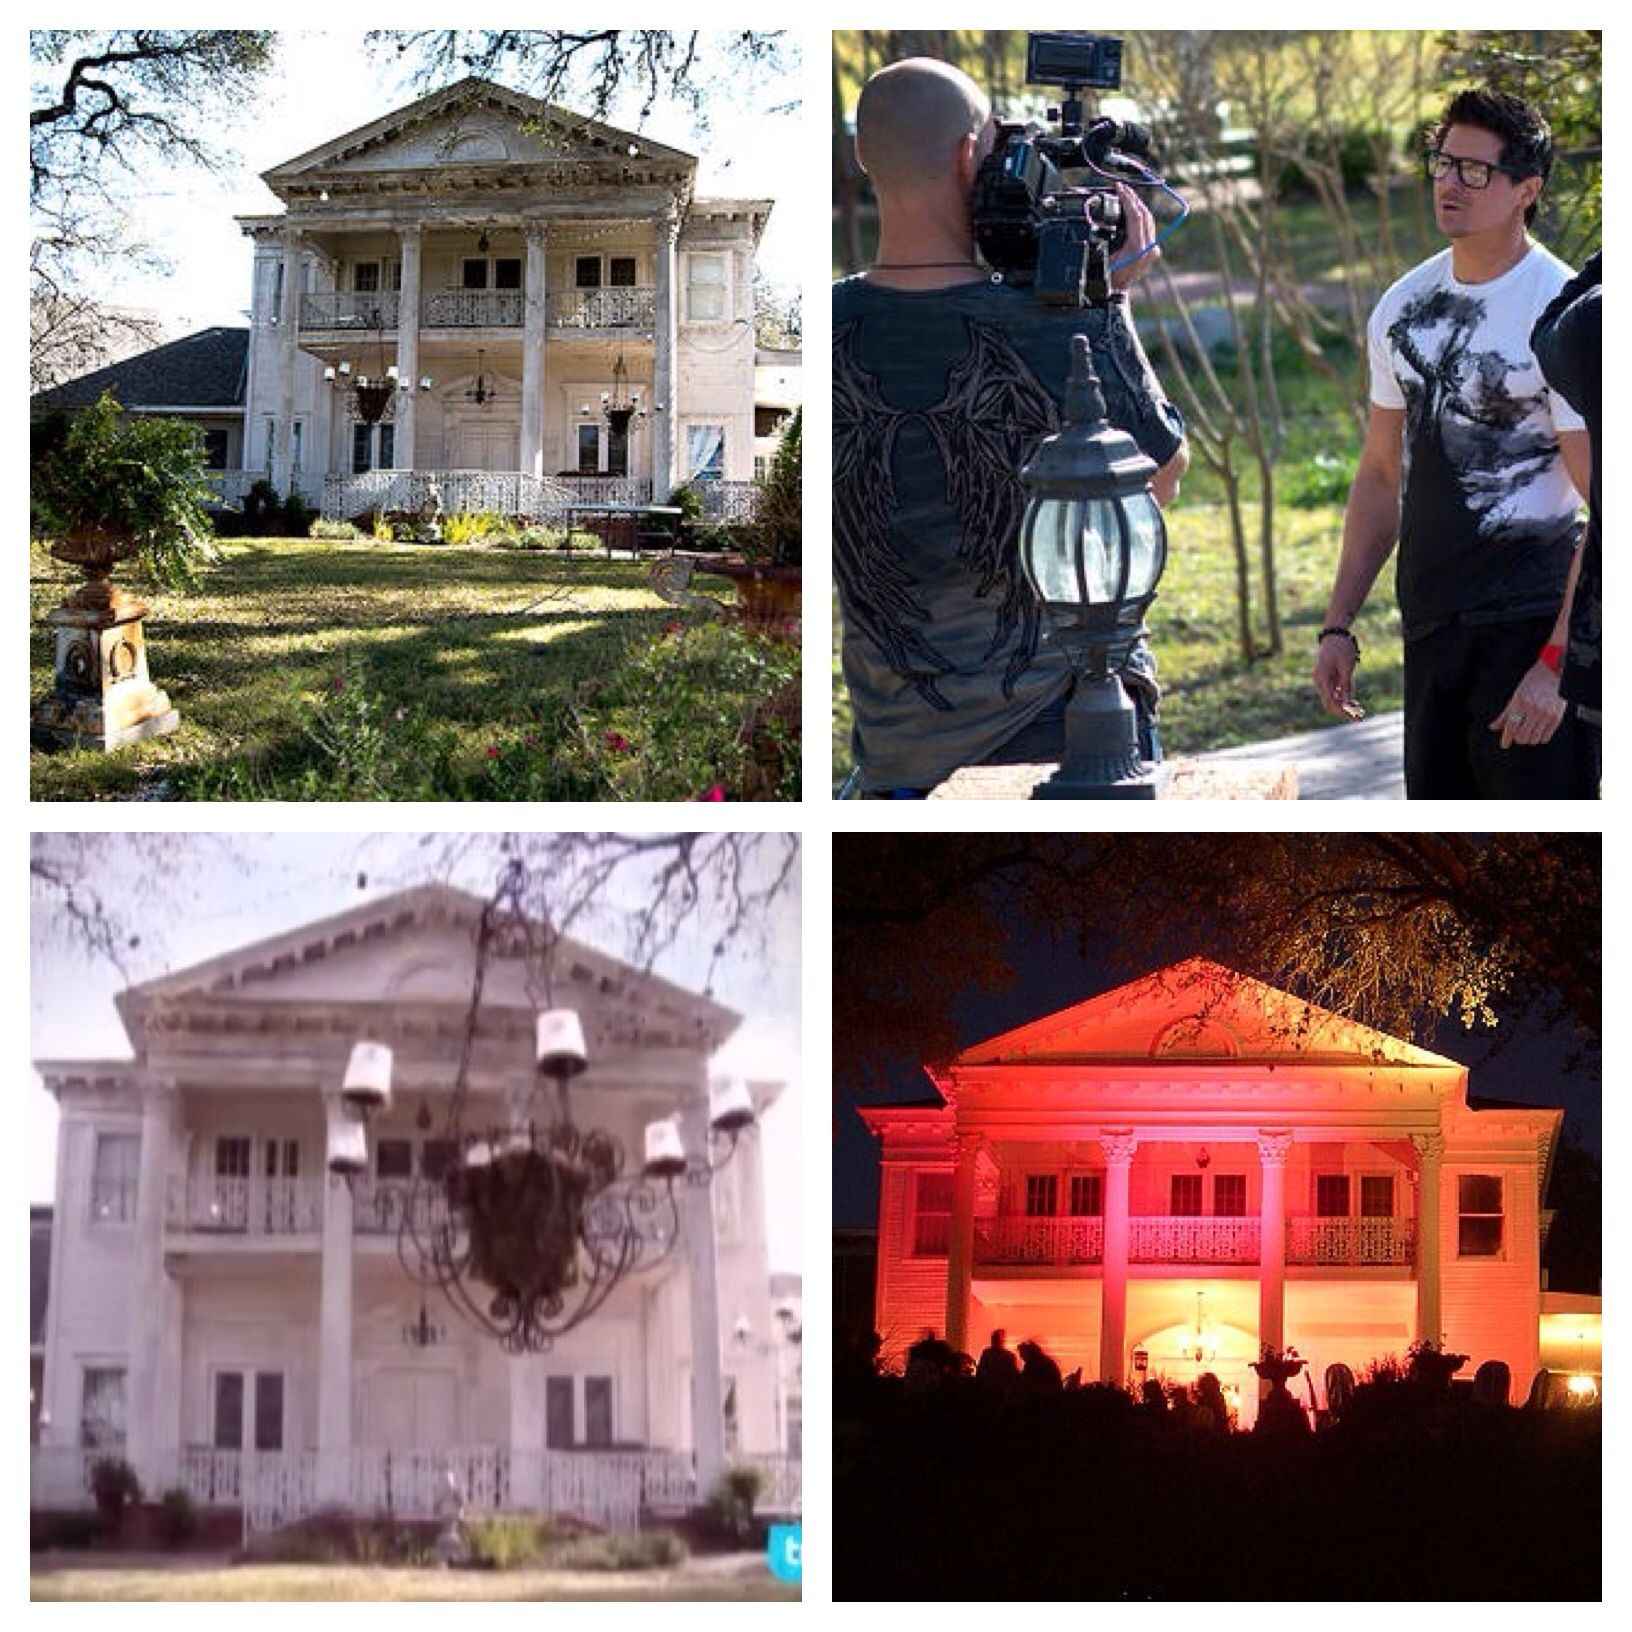 On a 30 acre hilltop in northeast San Antonio sits an old antebellum estate with towering fluted columns flanking an arched oak doorway with wavy lead glass windows. Hollywood couldn't create a more picturesque haunted house. The Black Swan Inn was built in 1867 on the site of the 1842 Battle of Salado Creek... #indianbeddoll